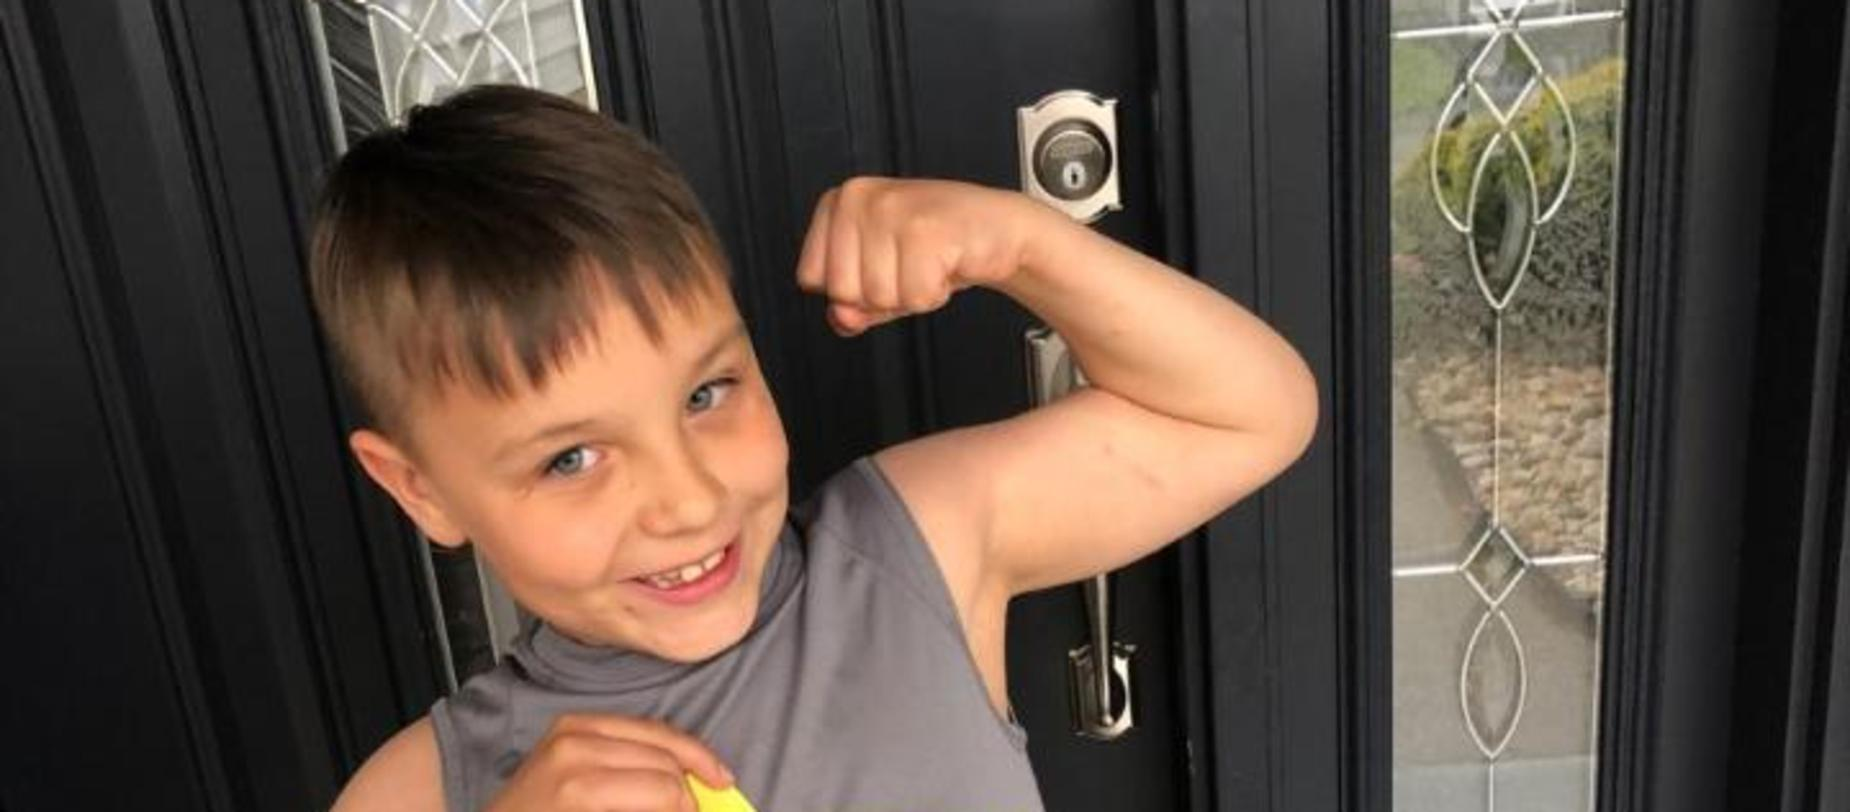 Boy flexing his muscles